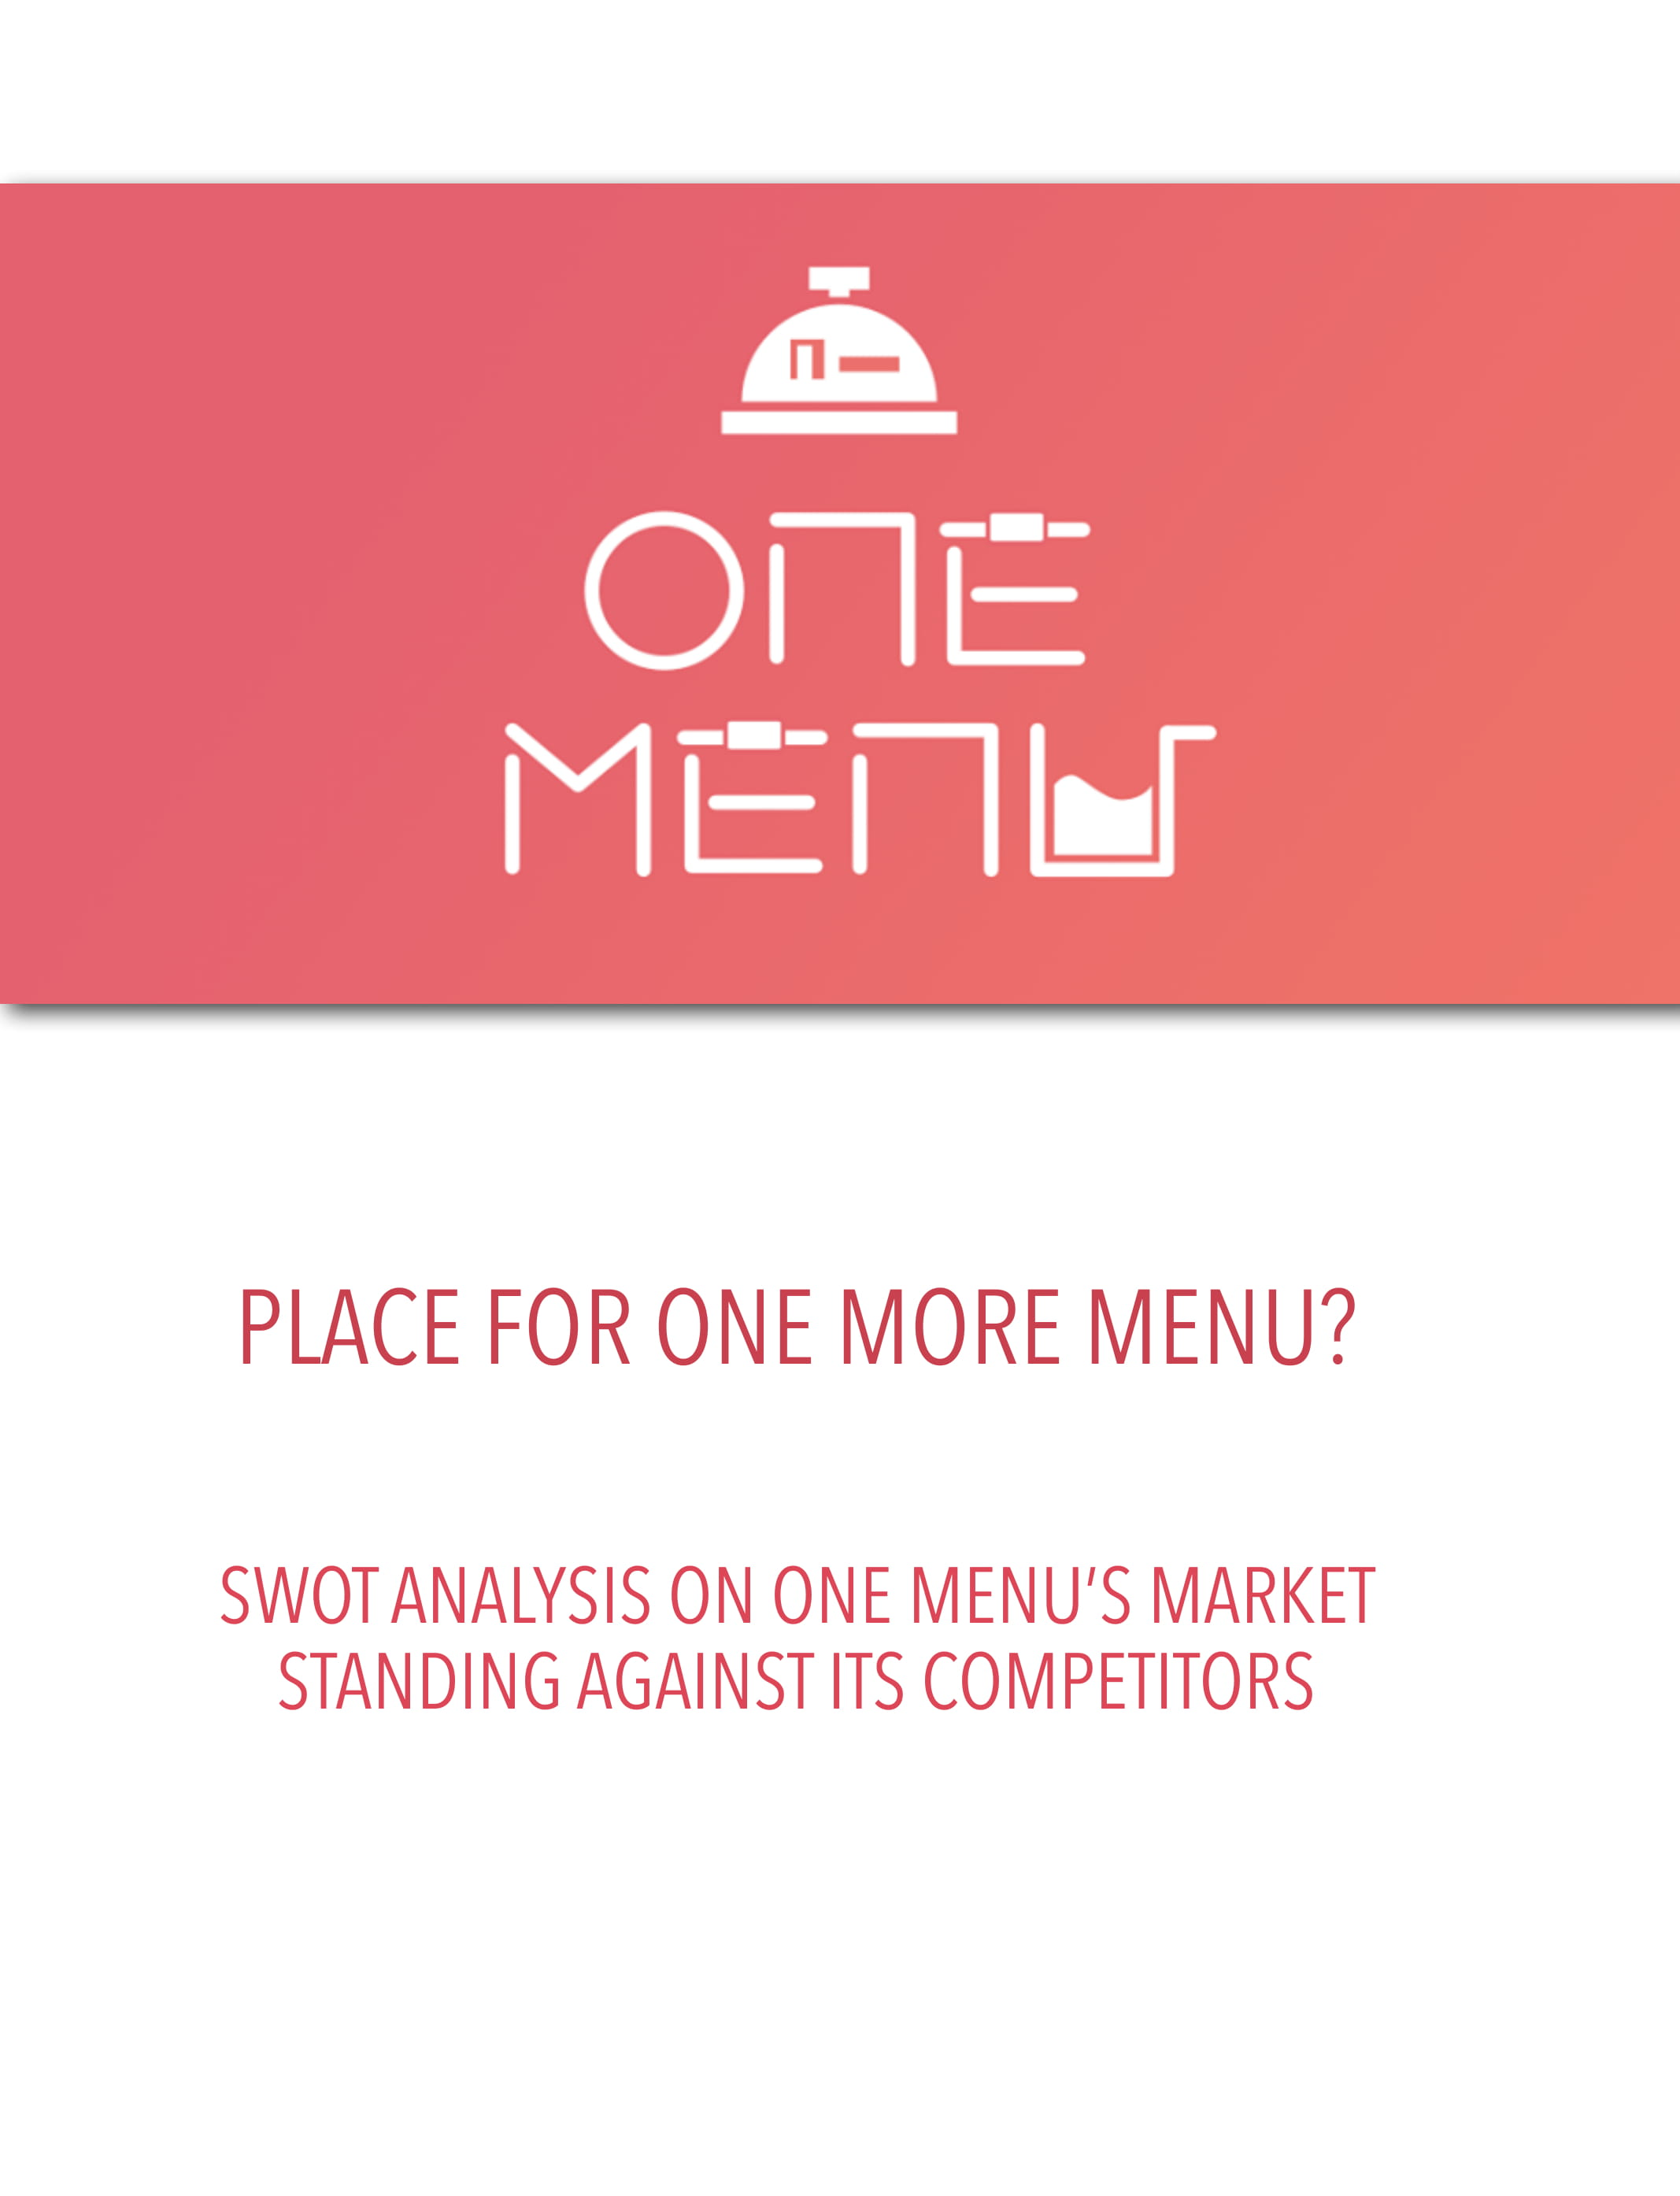 restaurant swot analysis example 01